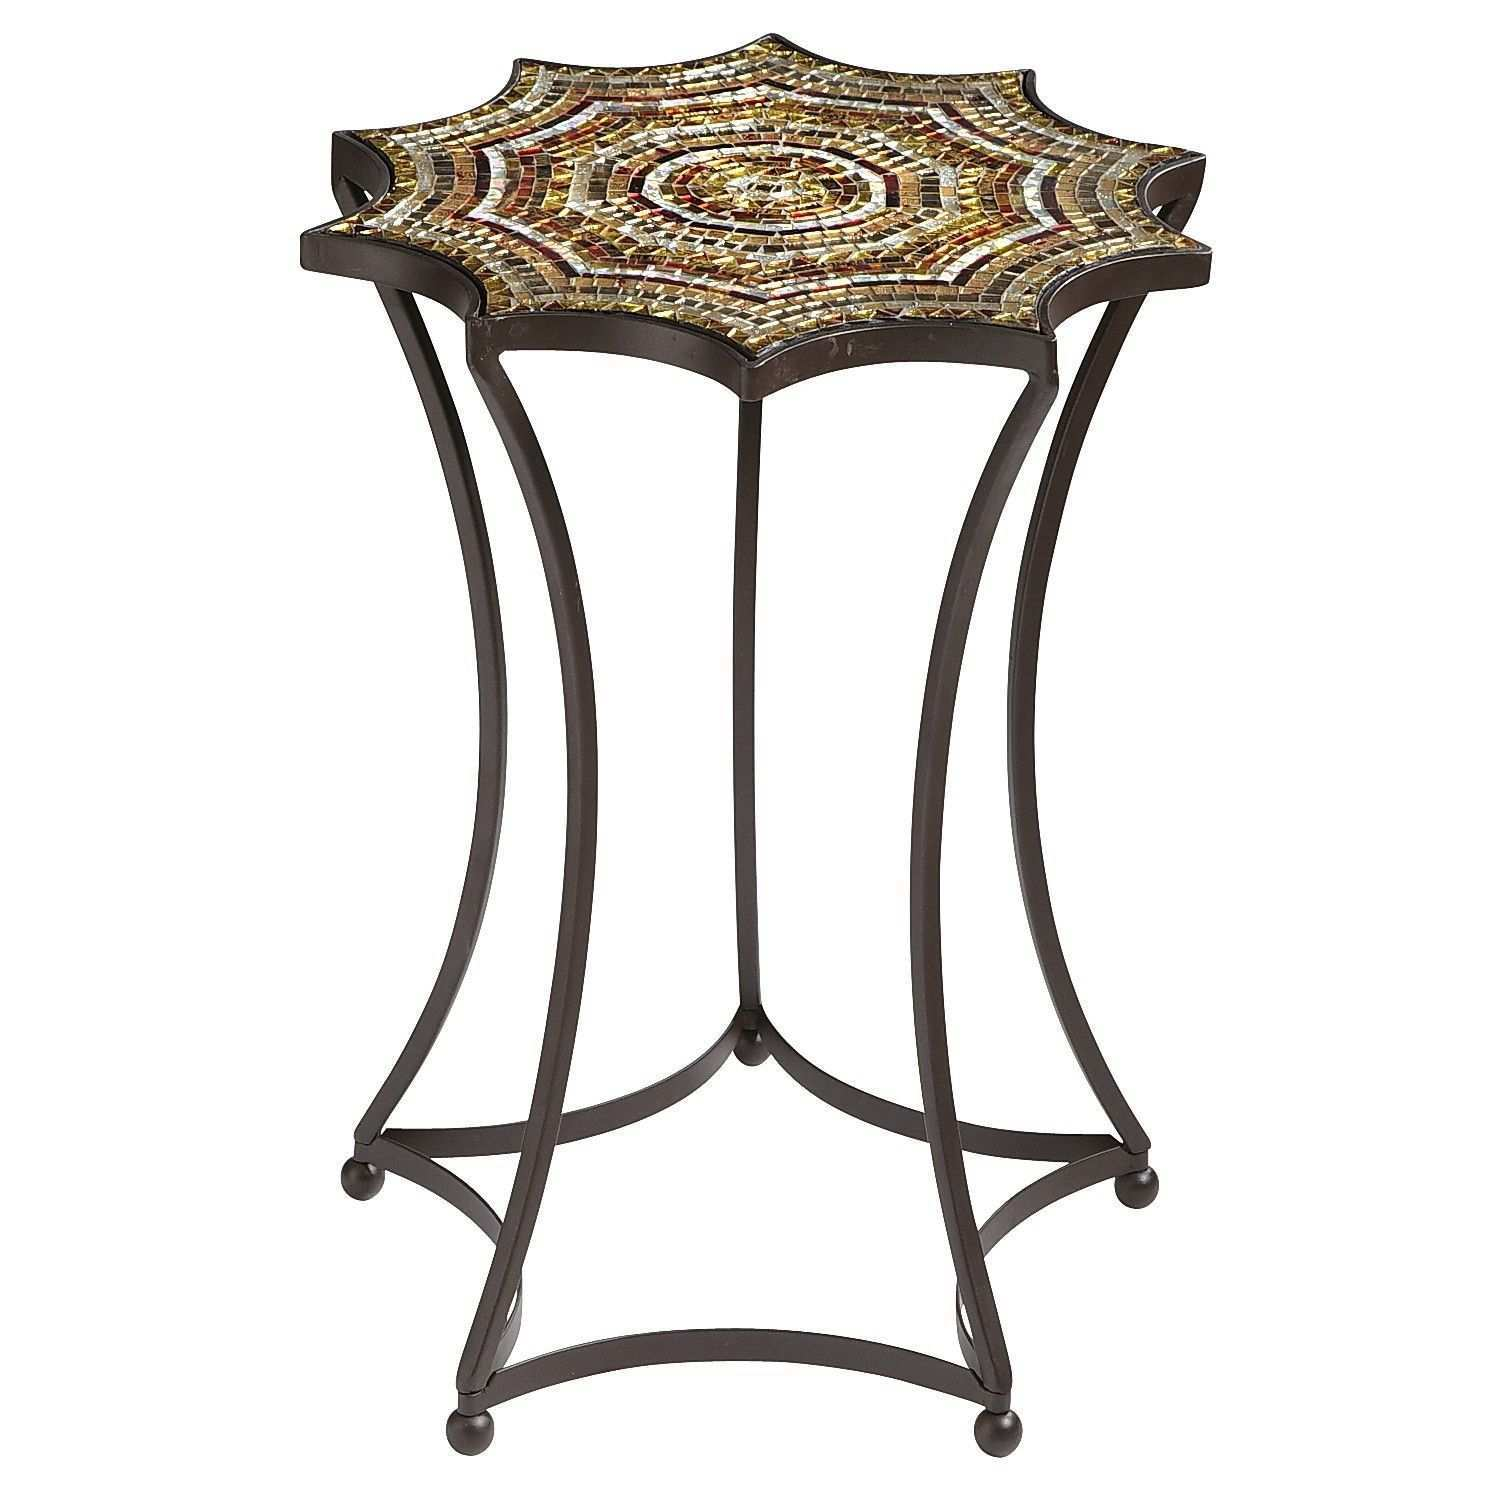 julian mosaic accent table ideas outdoor coffee with starburst pier imports living room pertaining glass dining and chairs clearance wicker top round kitchen set garden storage